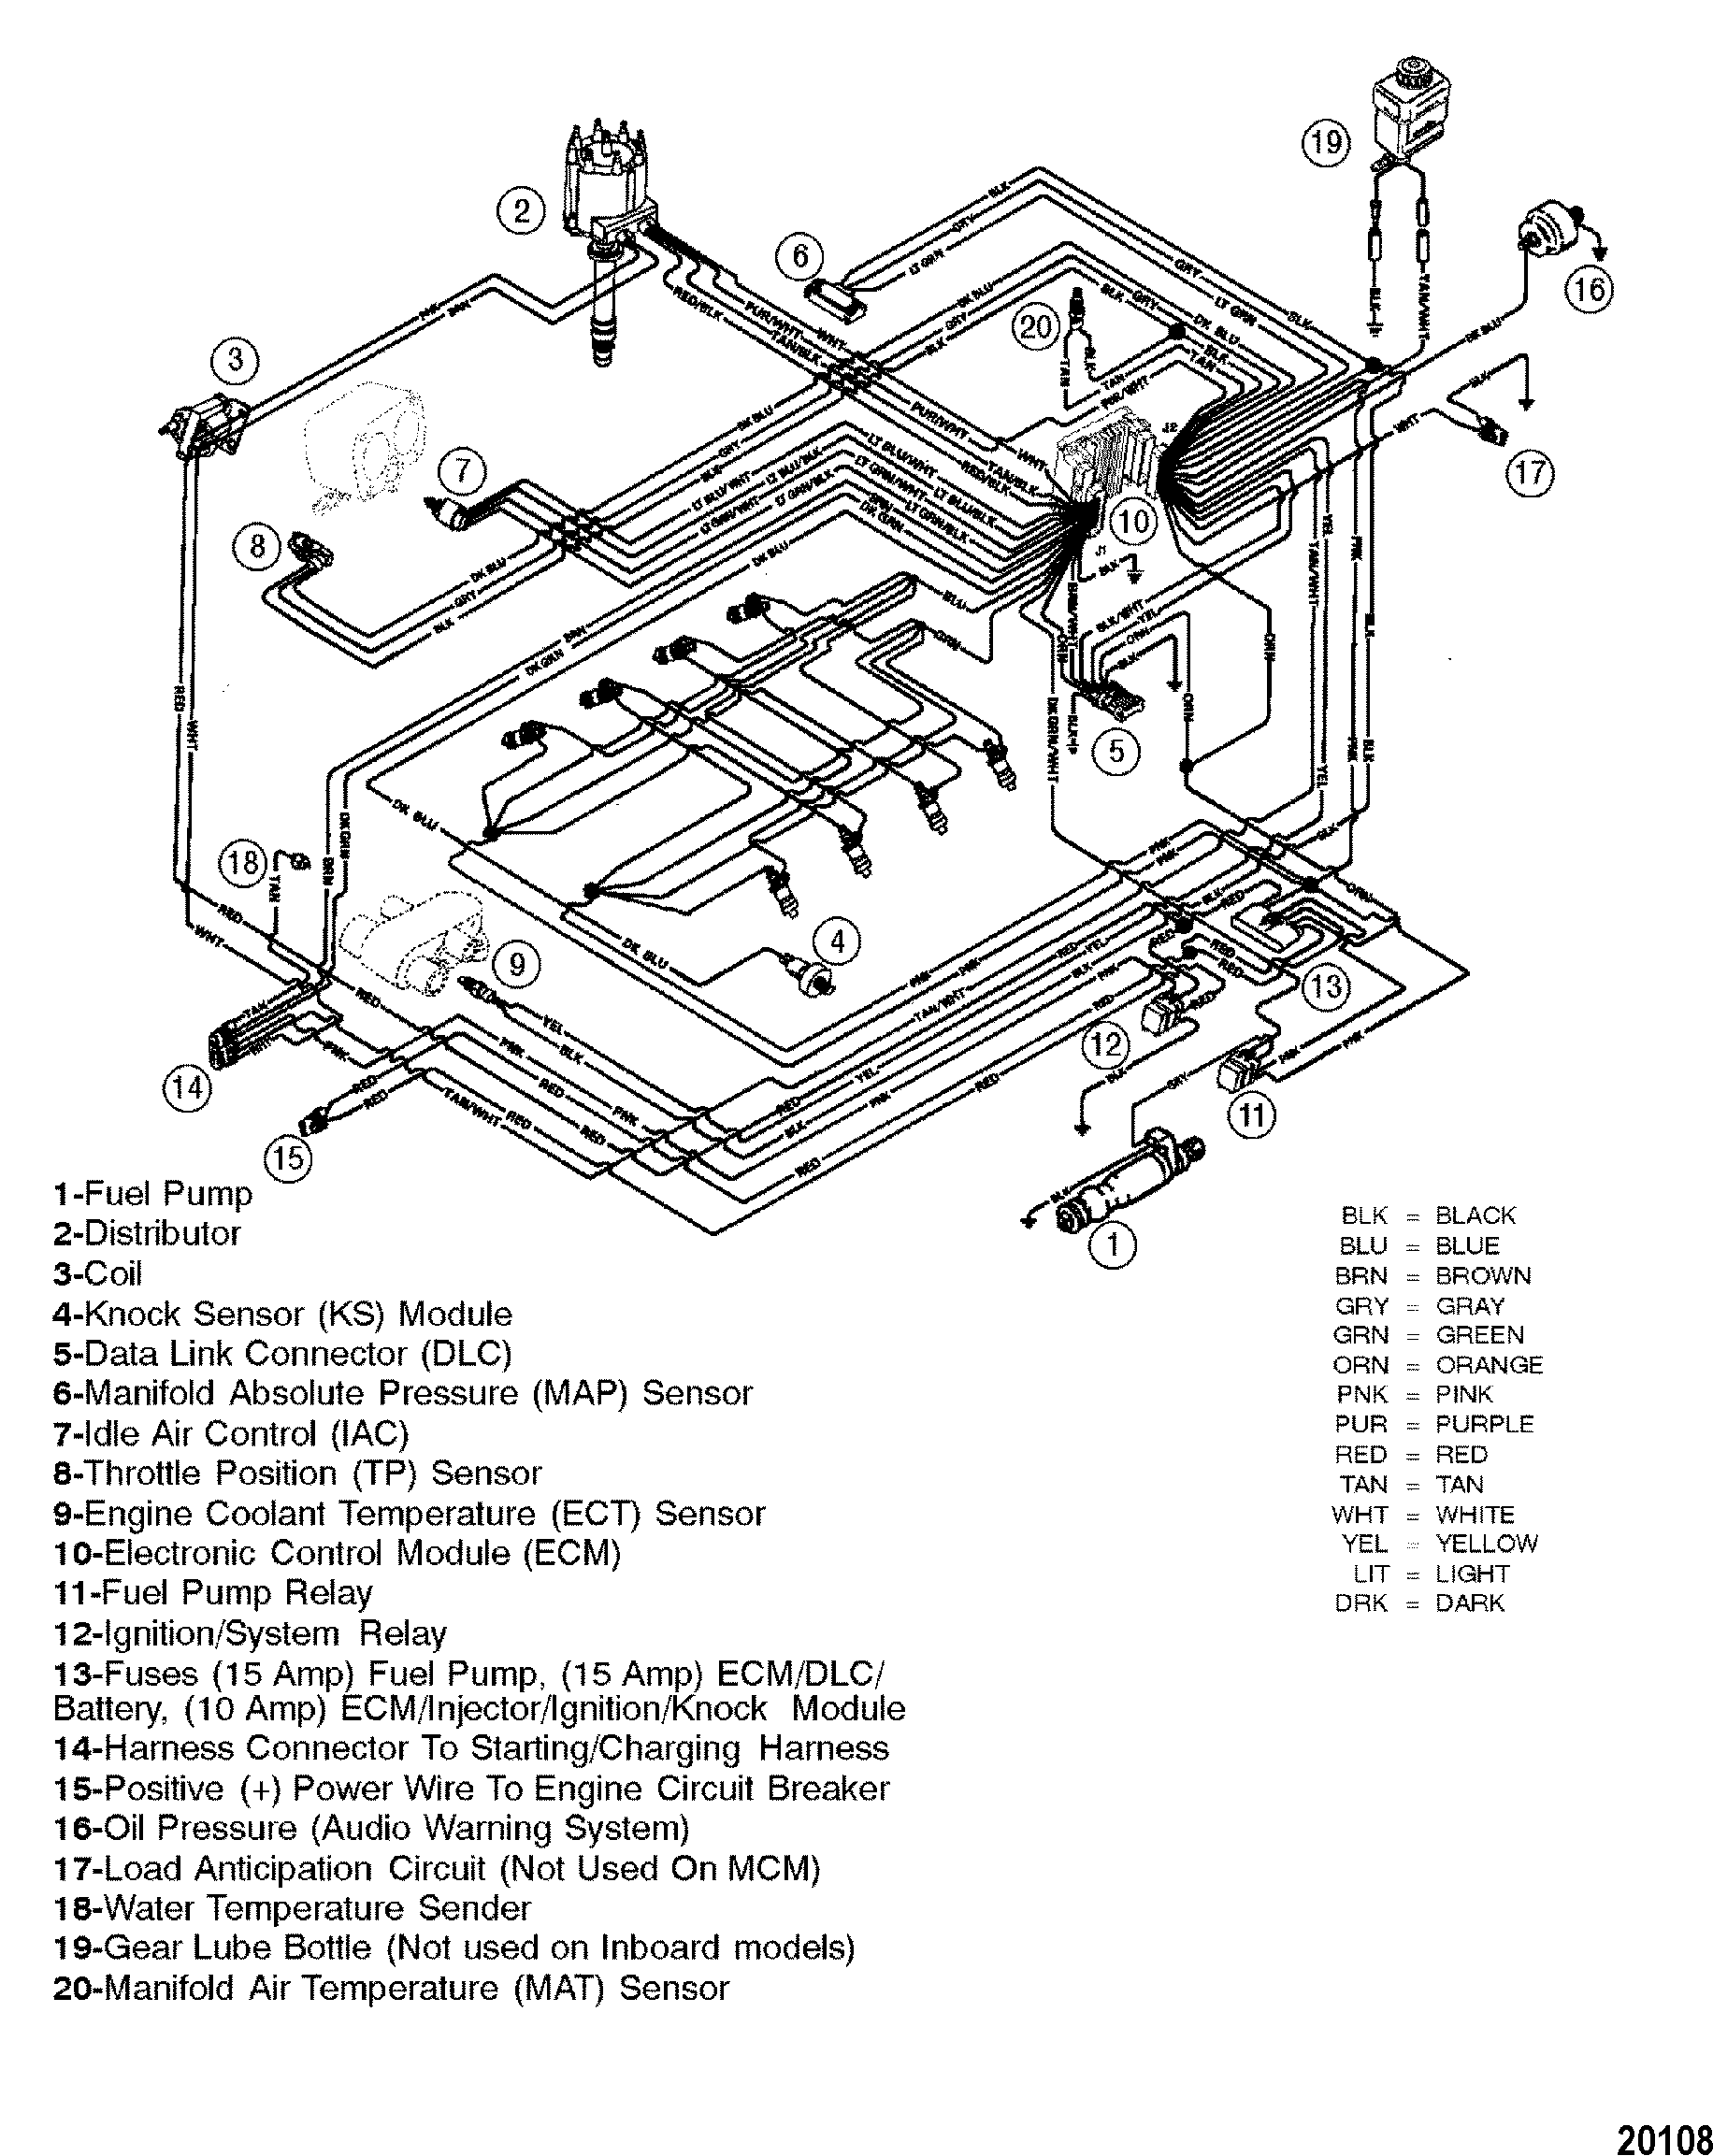 hight resolution of 5 7 mercruiser engine wiring diagram wiring diagram inside mercruiser 5 7 engine parts diagram mercruiser 5